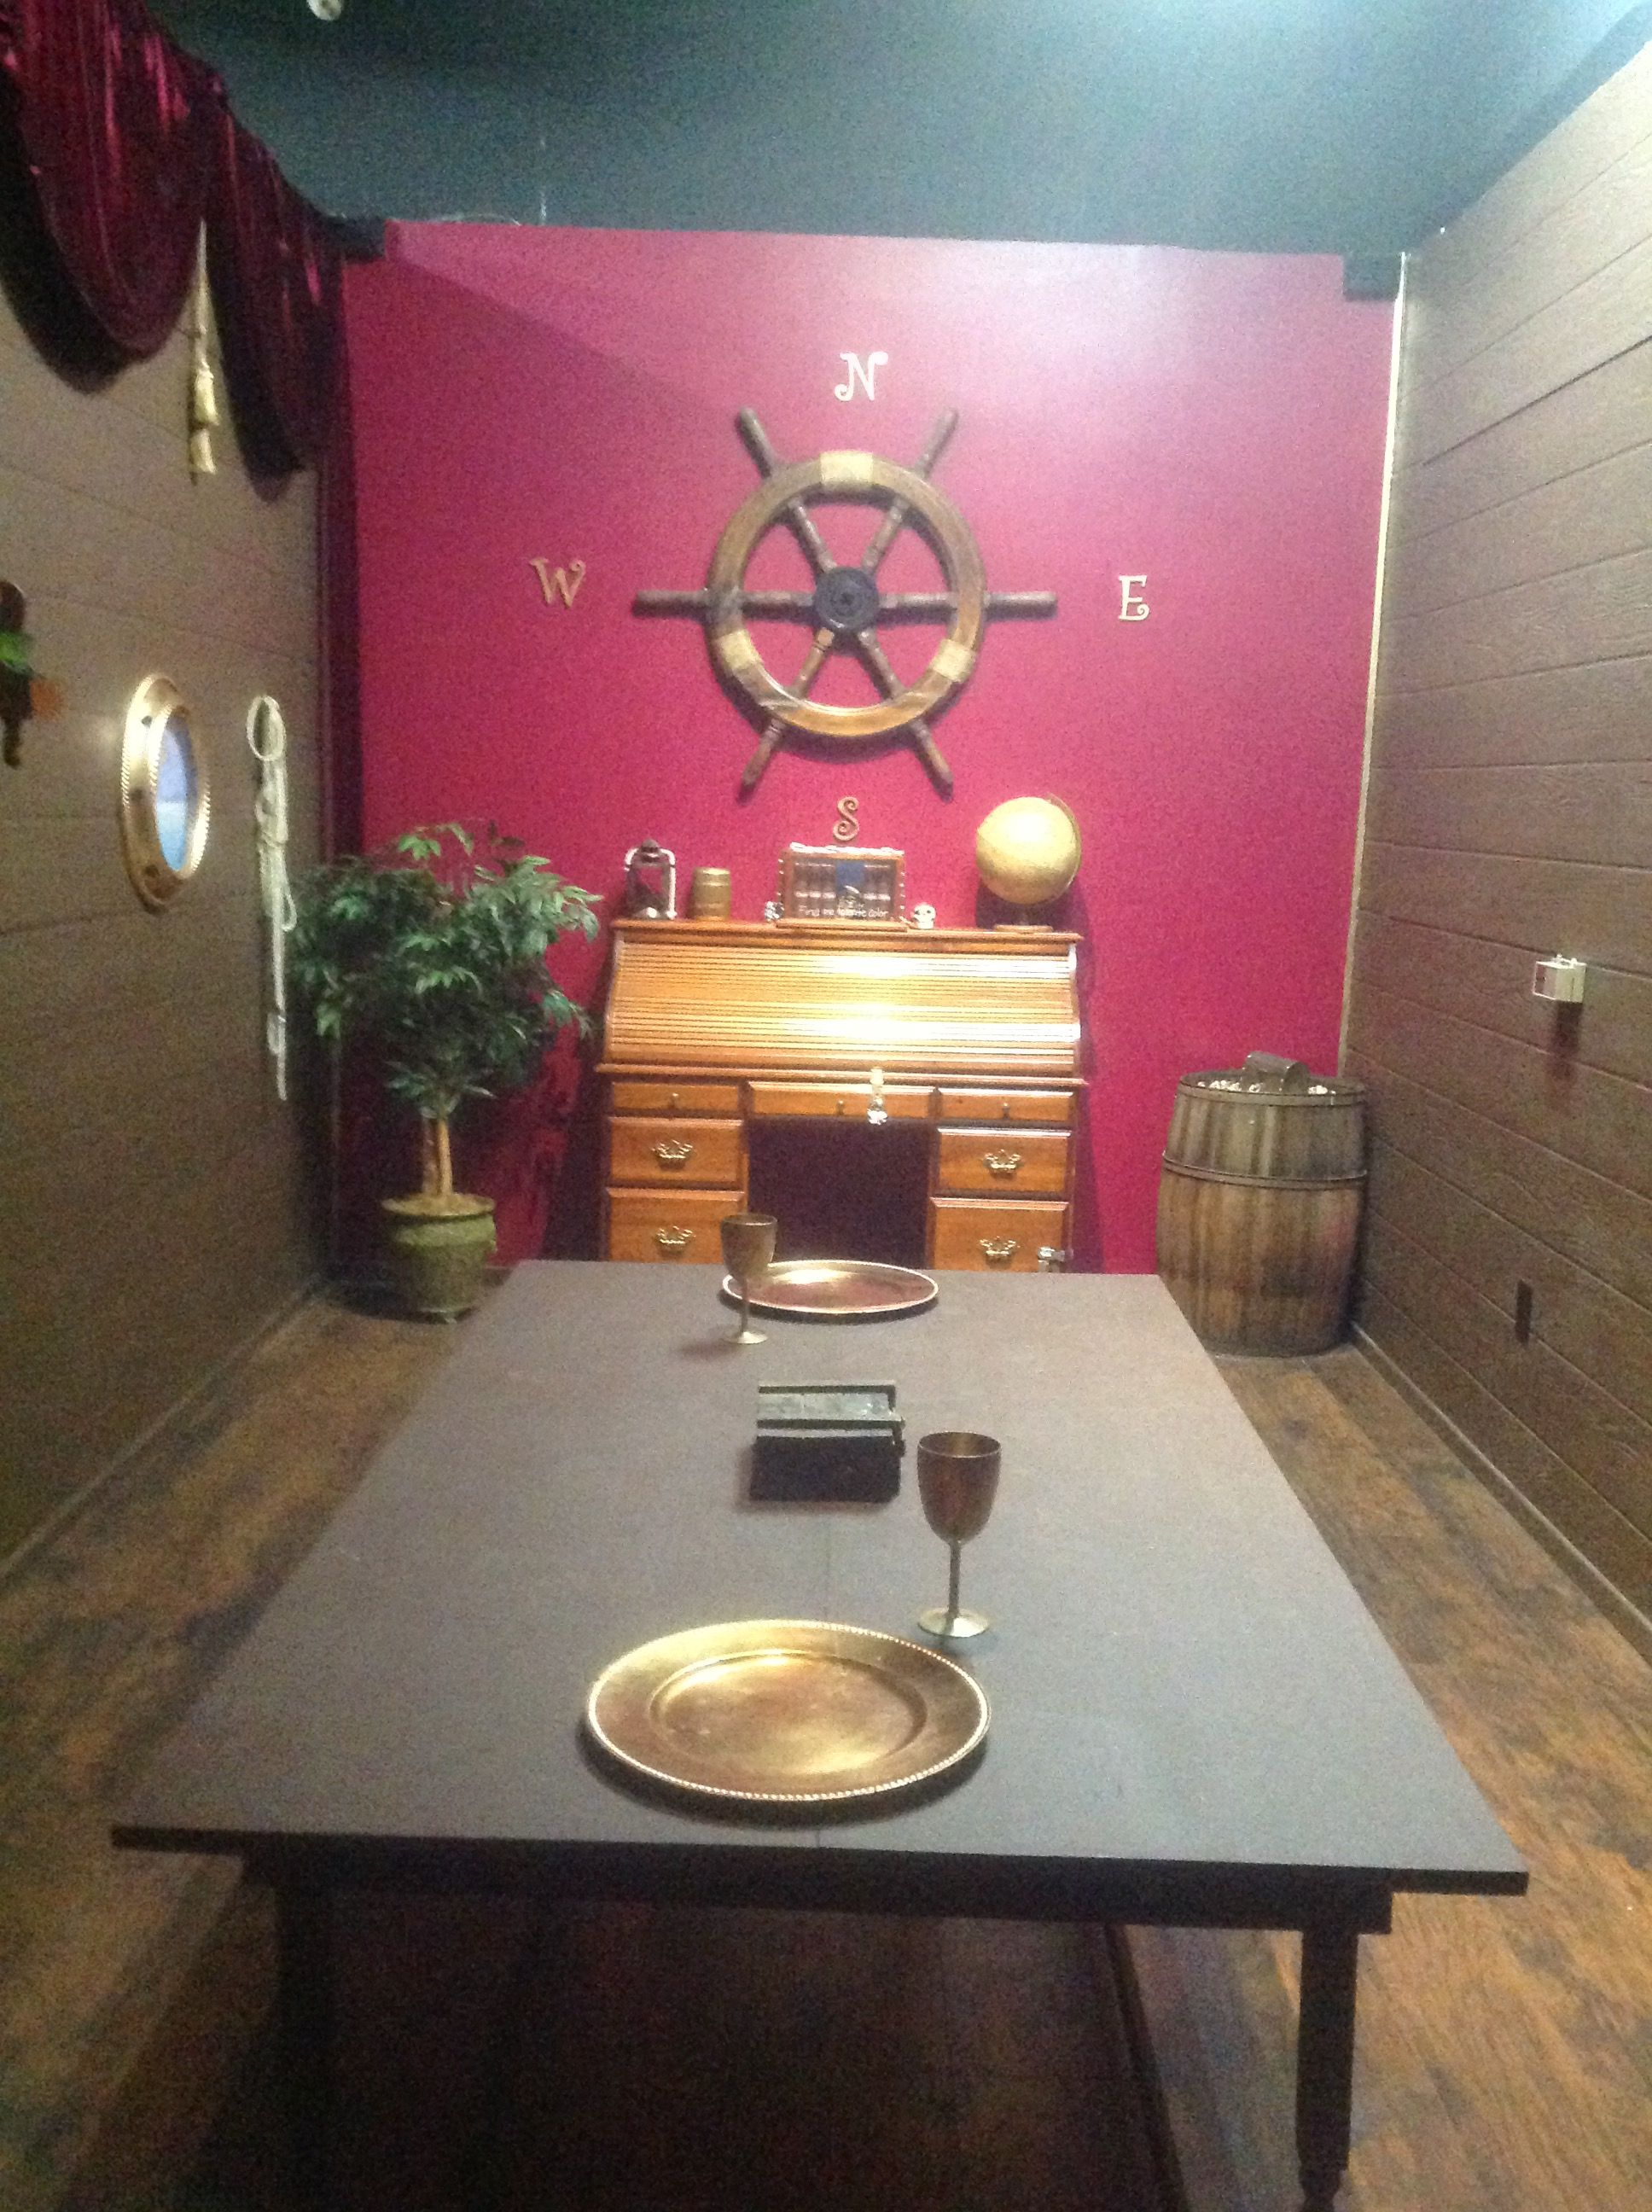 This Is How We Set Up Our Pirate Room Check It Out In Antelope Valley S First Live Escape Room Book Online A Escape Room Puzzles Escape Room Escape Room Game